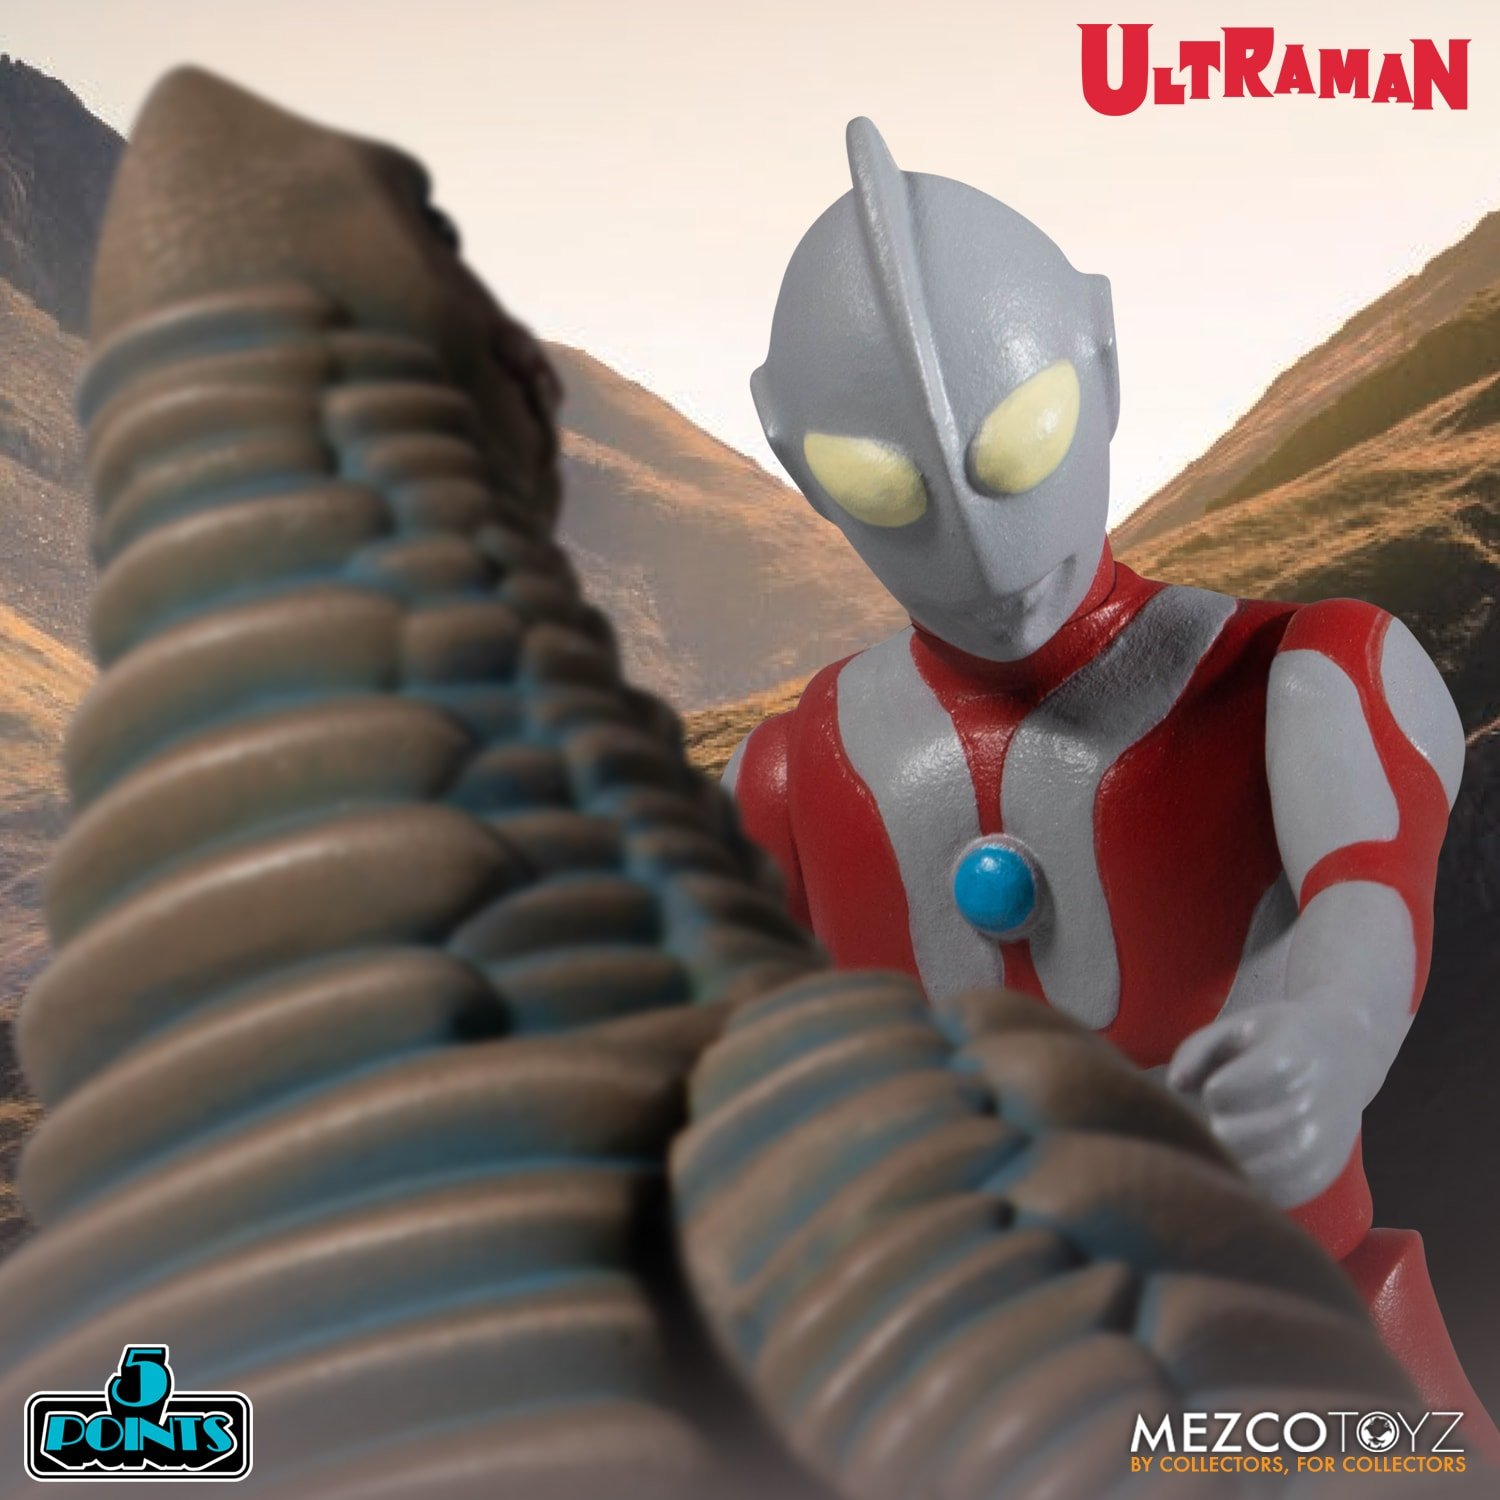 Mezco 5 Points Ultraman and Red King 005